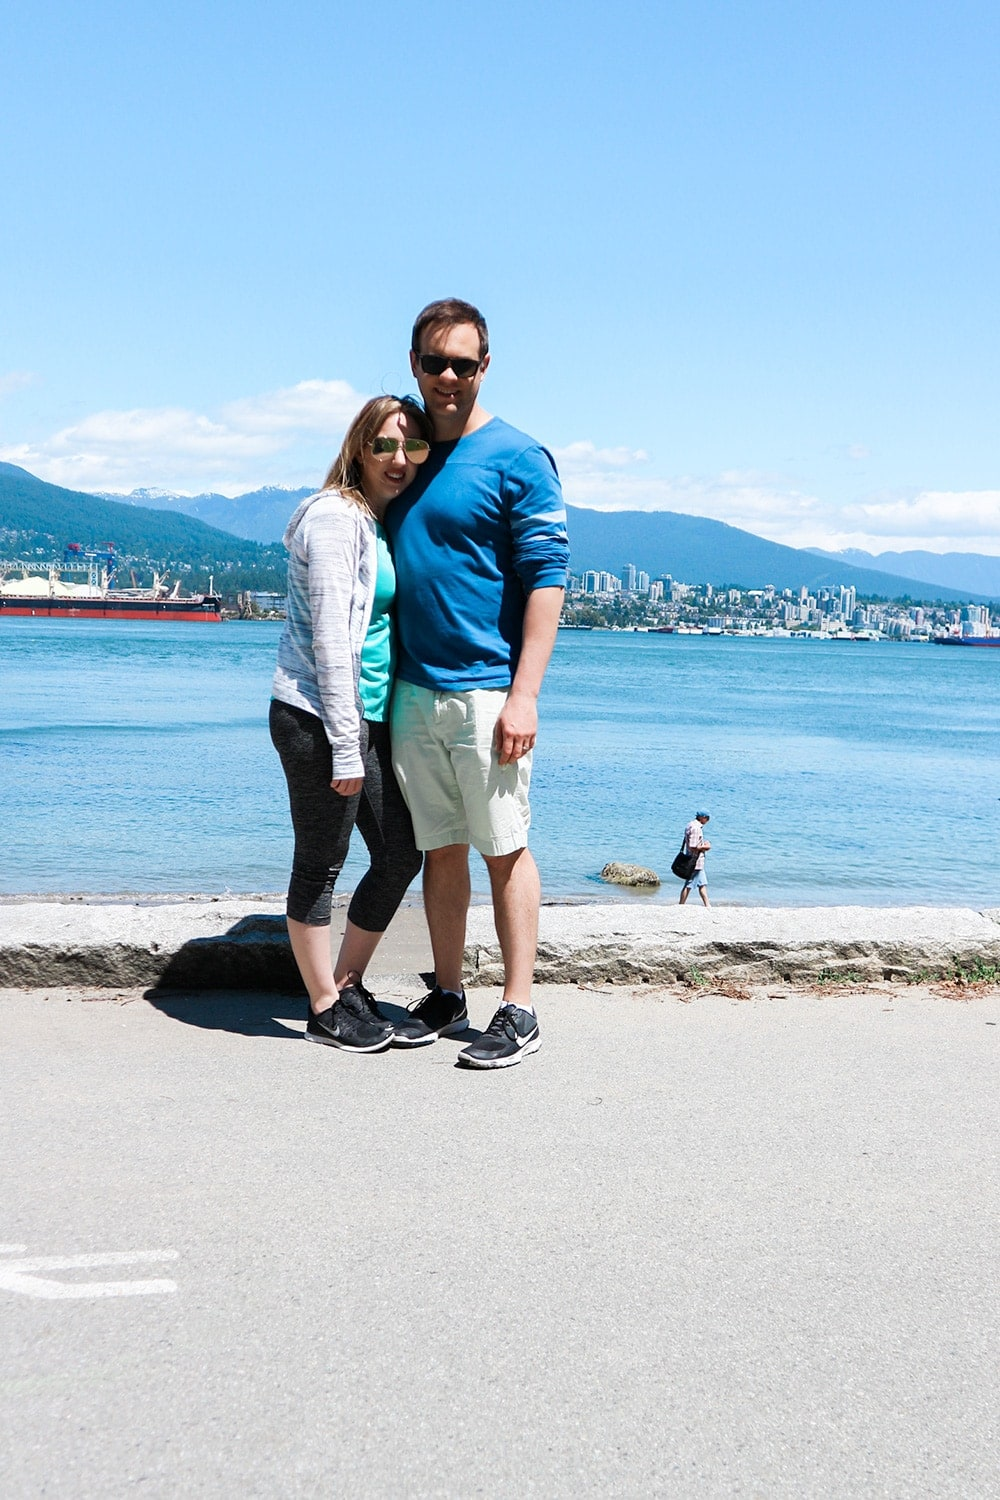 Travel Guide: Vancouver with Kids by Houston blogger Meg O. on the Go